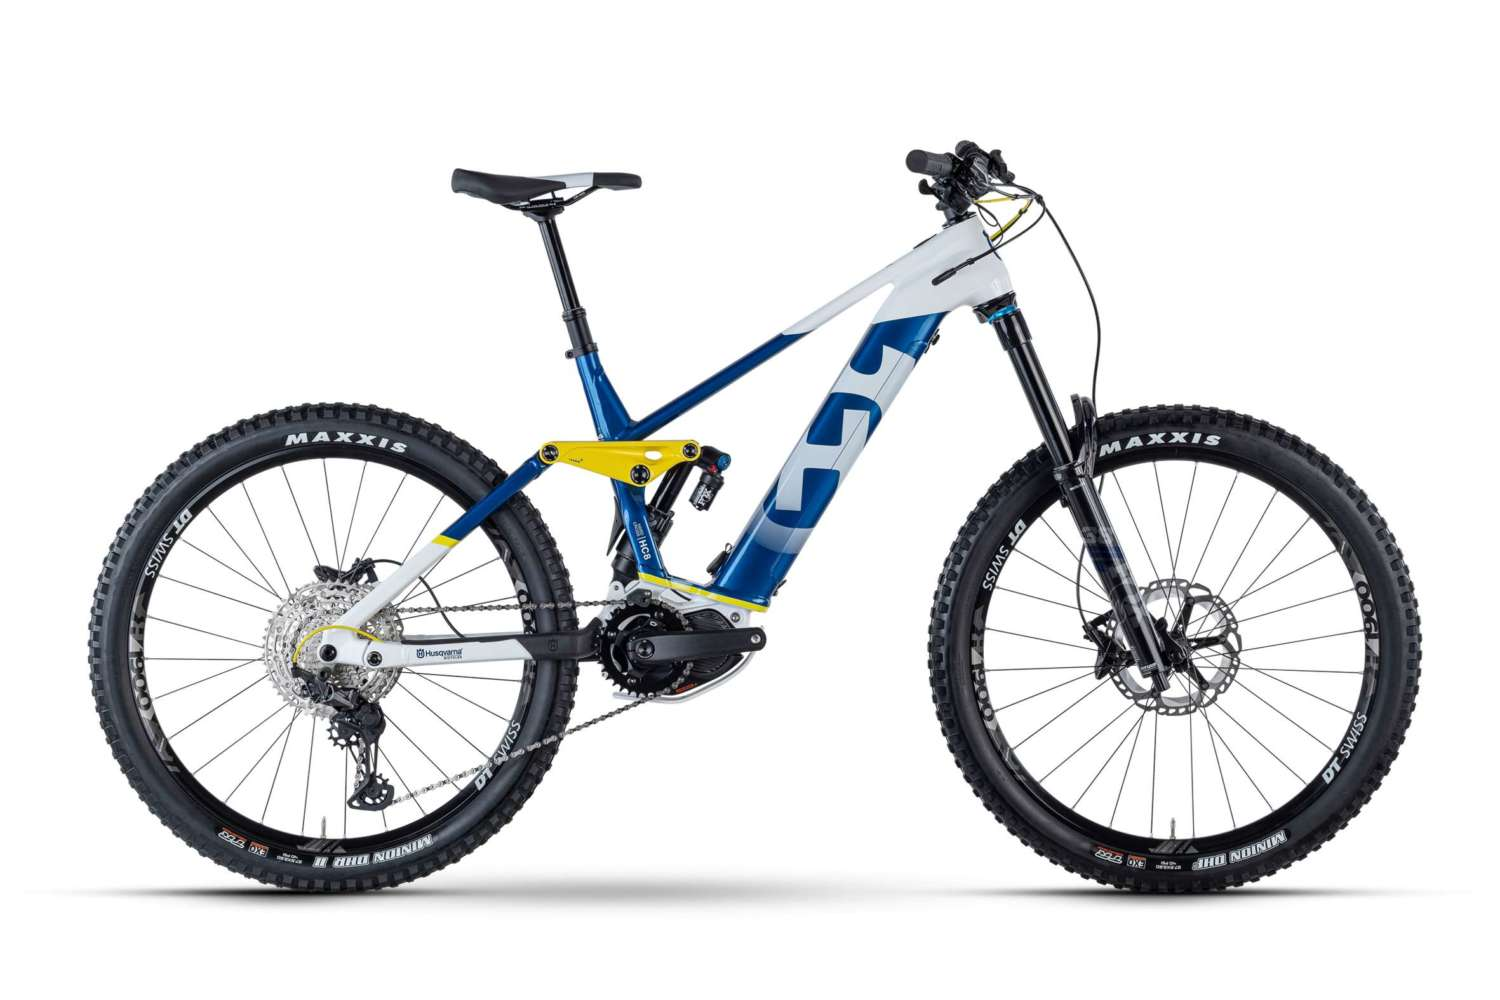 Husqvarna Hard Cross 8.0 2021